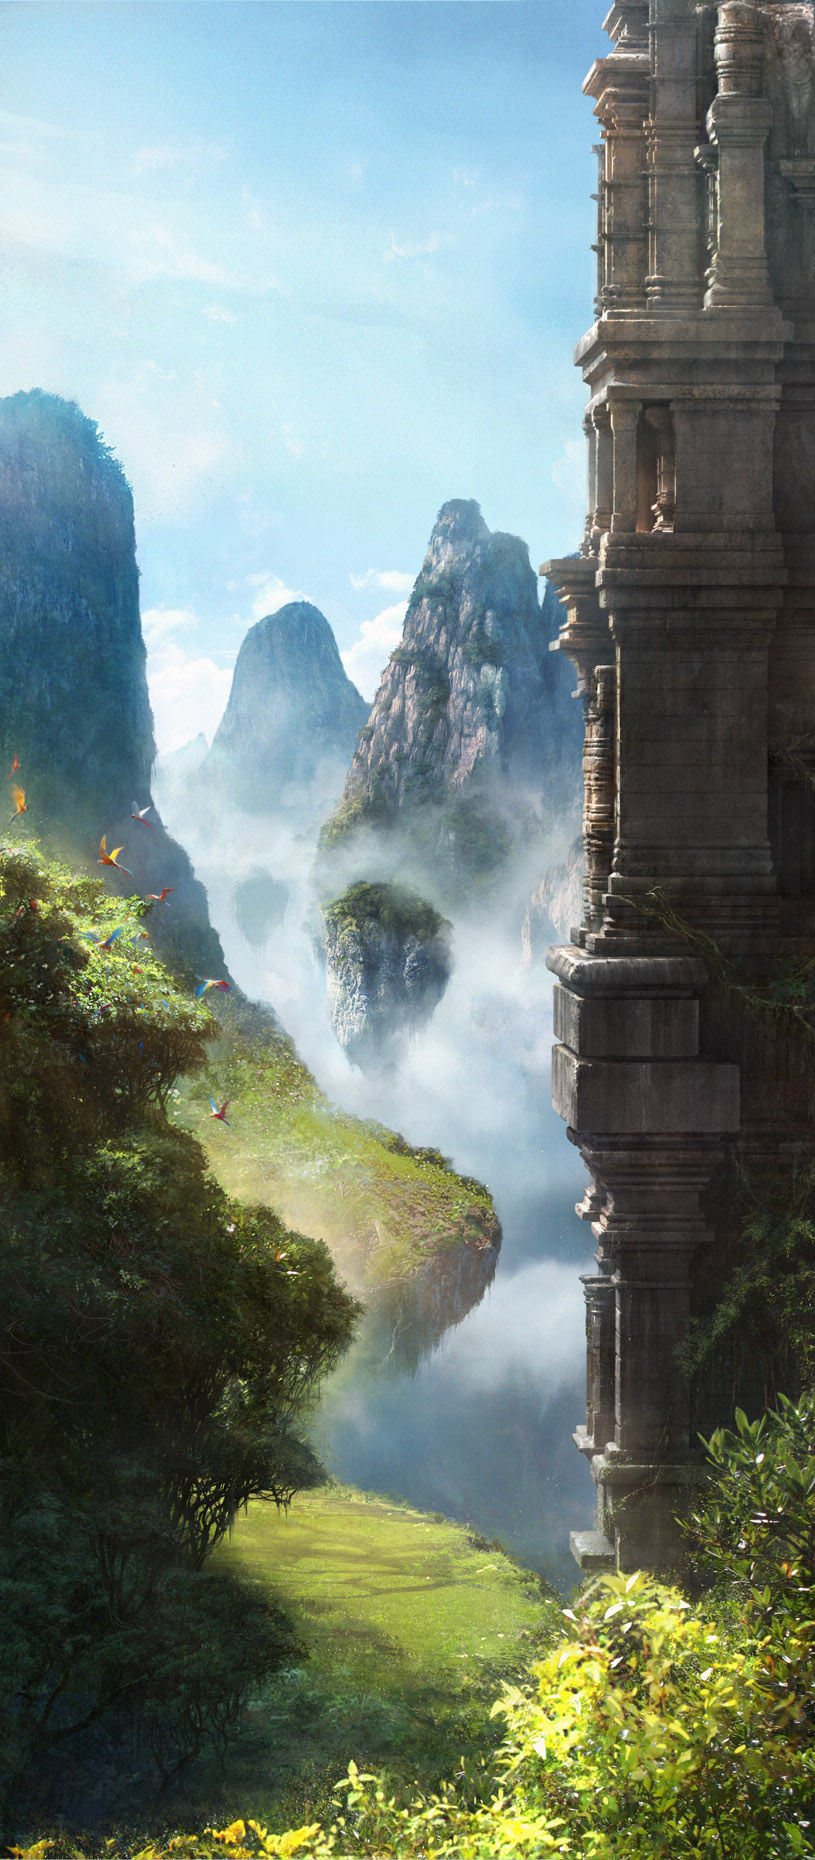 China-mysterious-mist-laden-mountains-wallpaper-wp424513-1